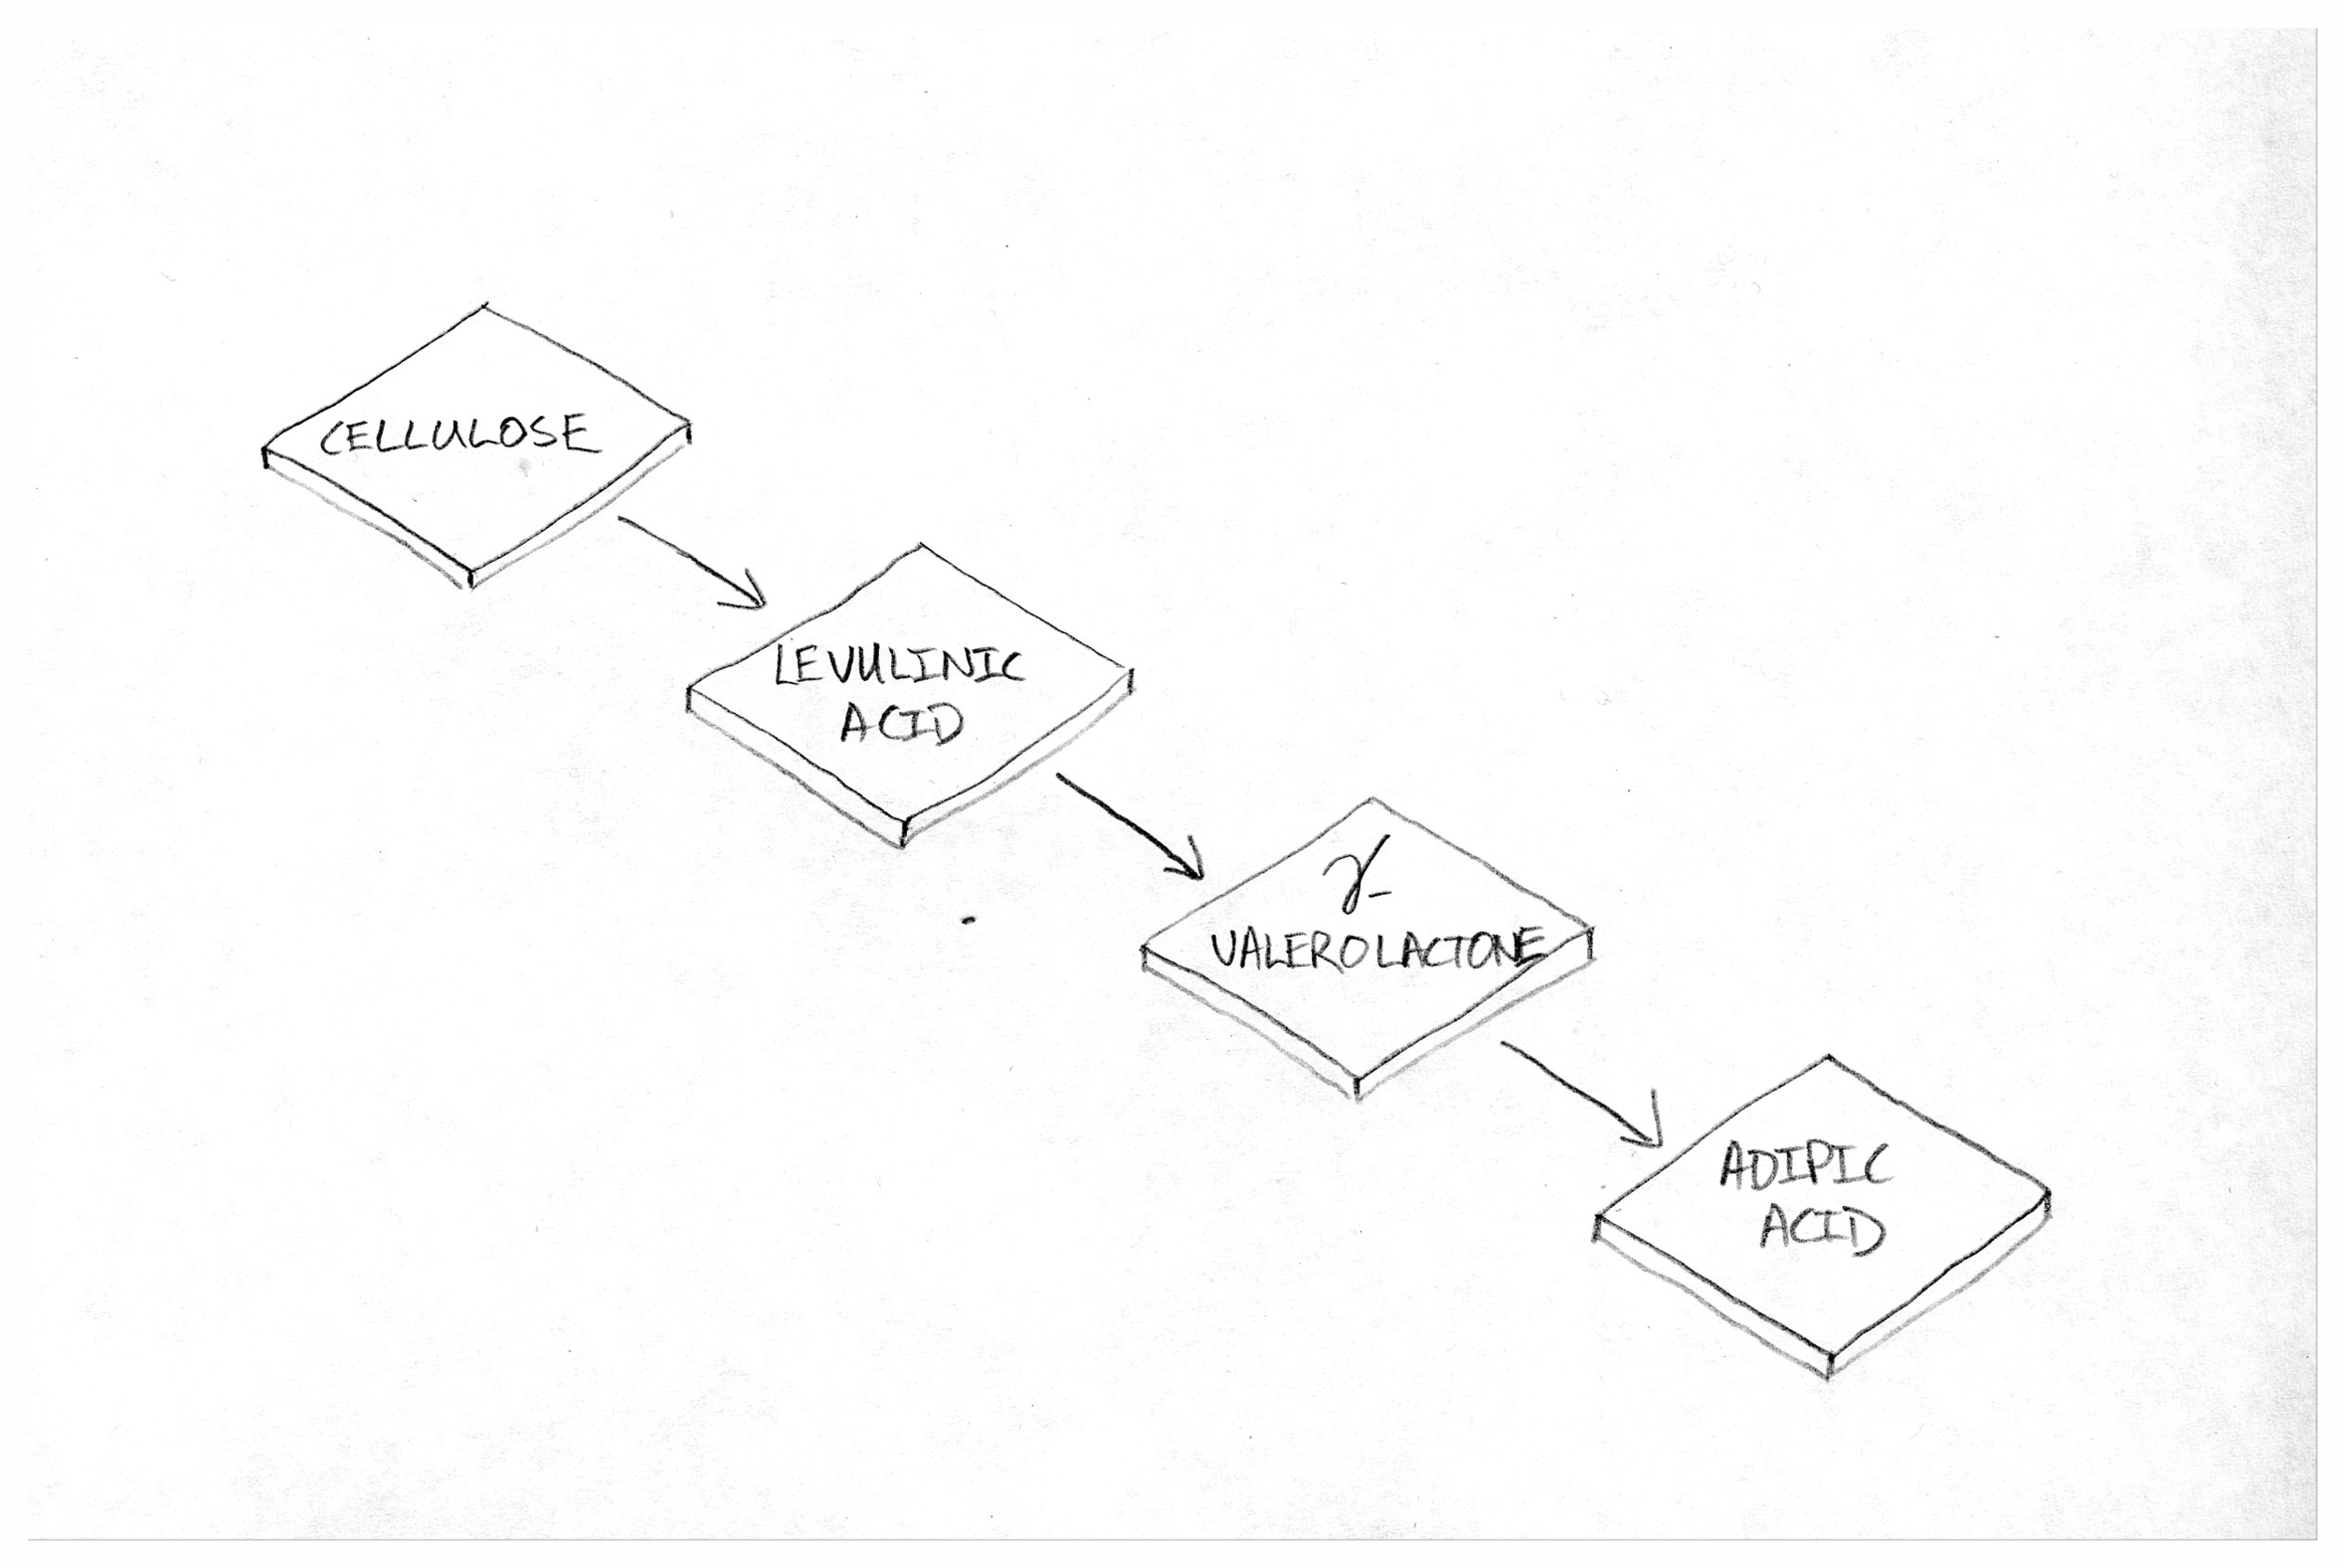 Figure 1: The Pathway.Essentially, a simple process flow diagram showing feedstocks, transformations to intermediates, and final product.